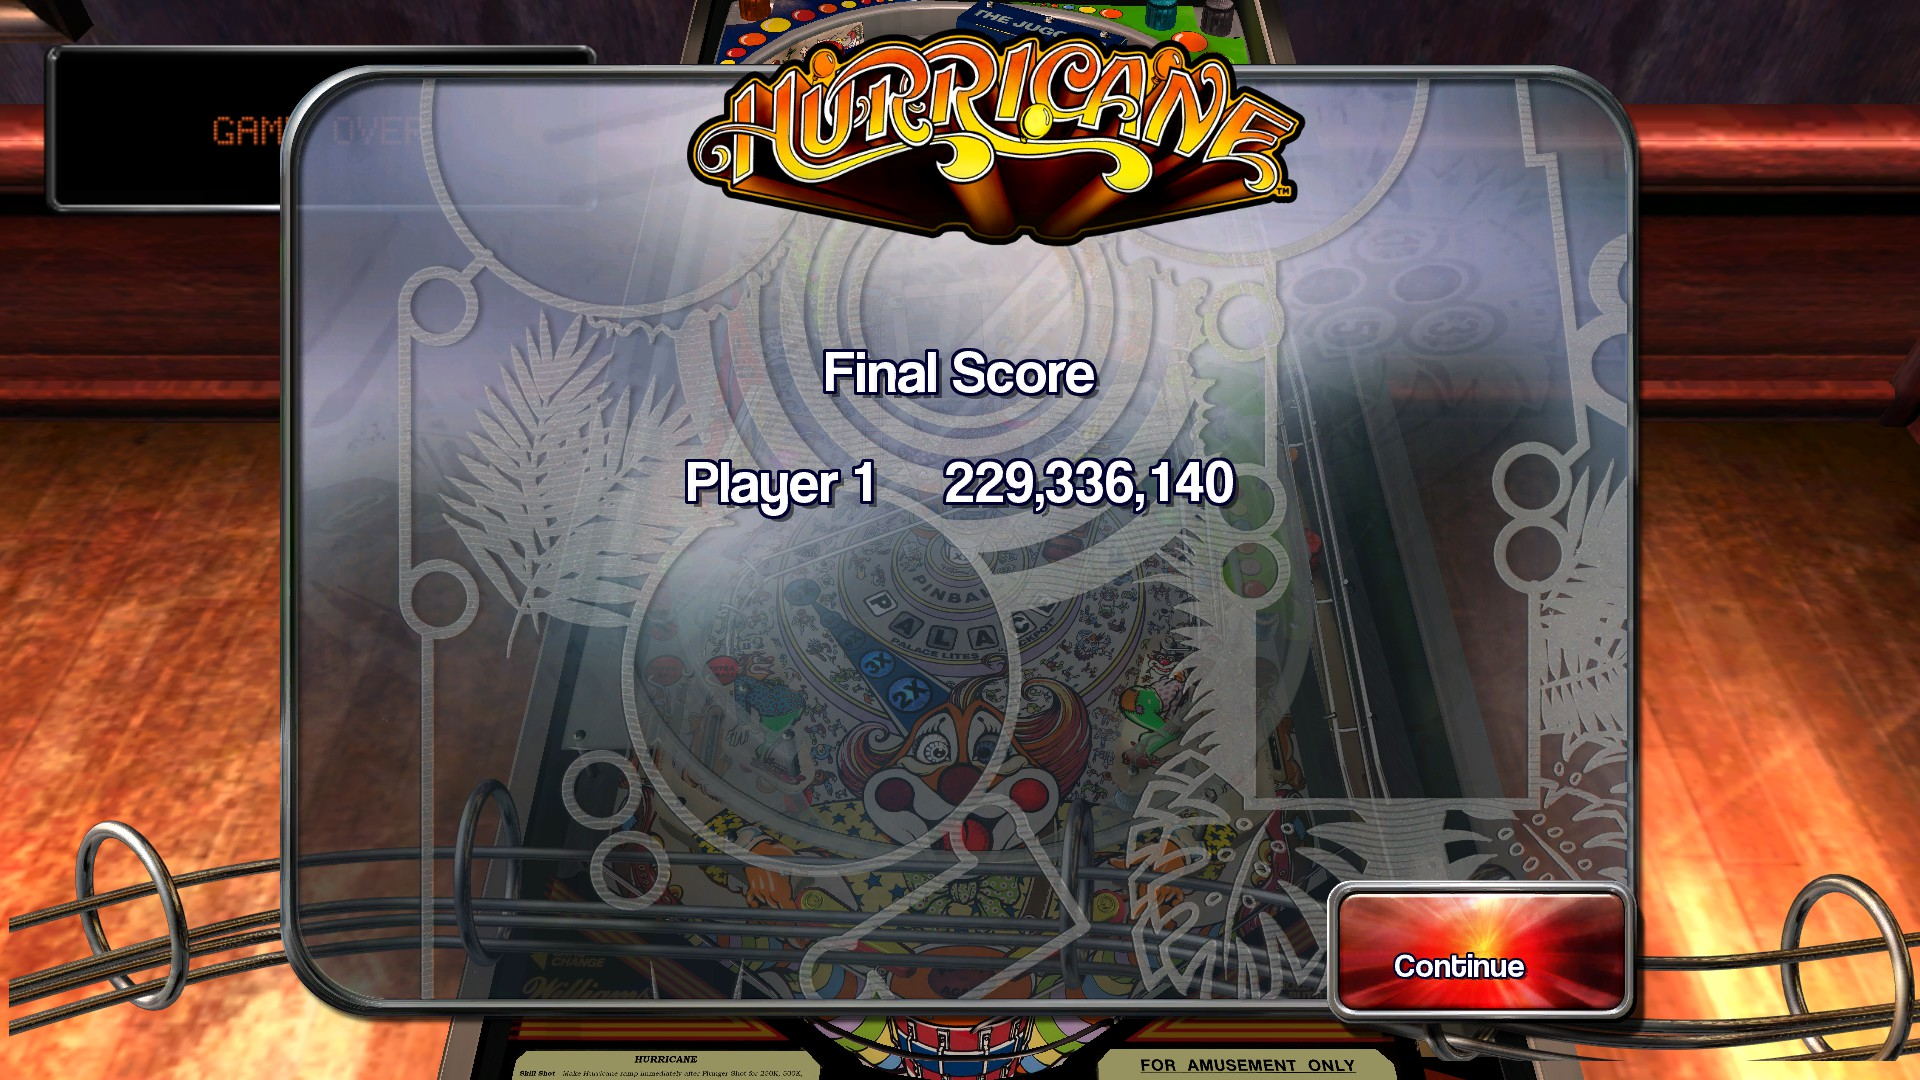 TheTrickster: Pinball Arcade: Hurricane (PC) 229,336,140 points on 2016-04-21 08:44:08